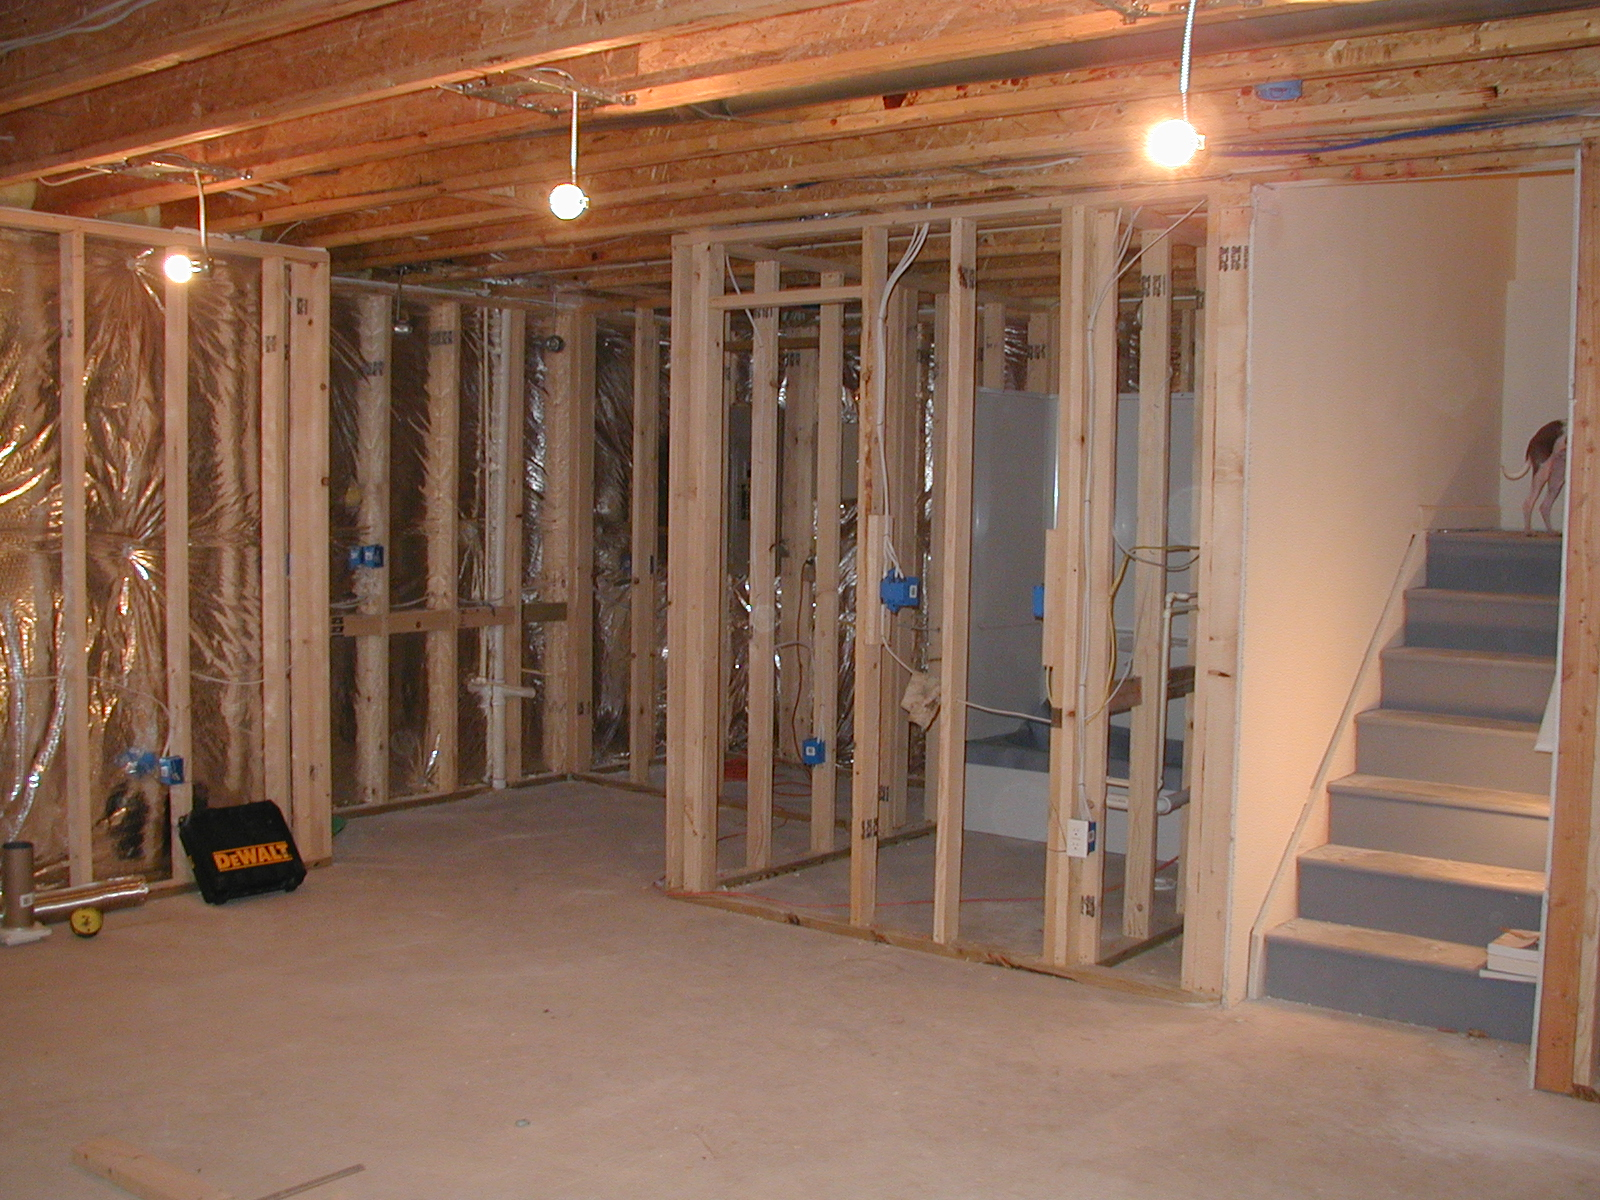 61 best basement framing images on pinterest basement basements and backyard ideas for Framing interior basement walls